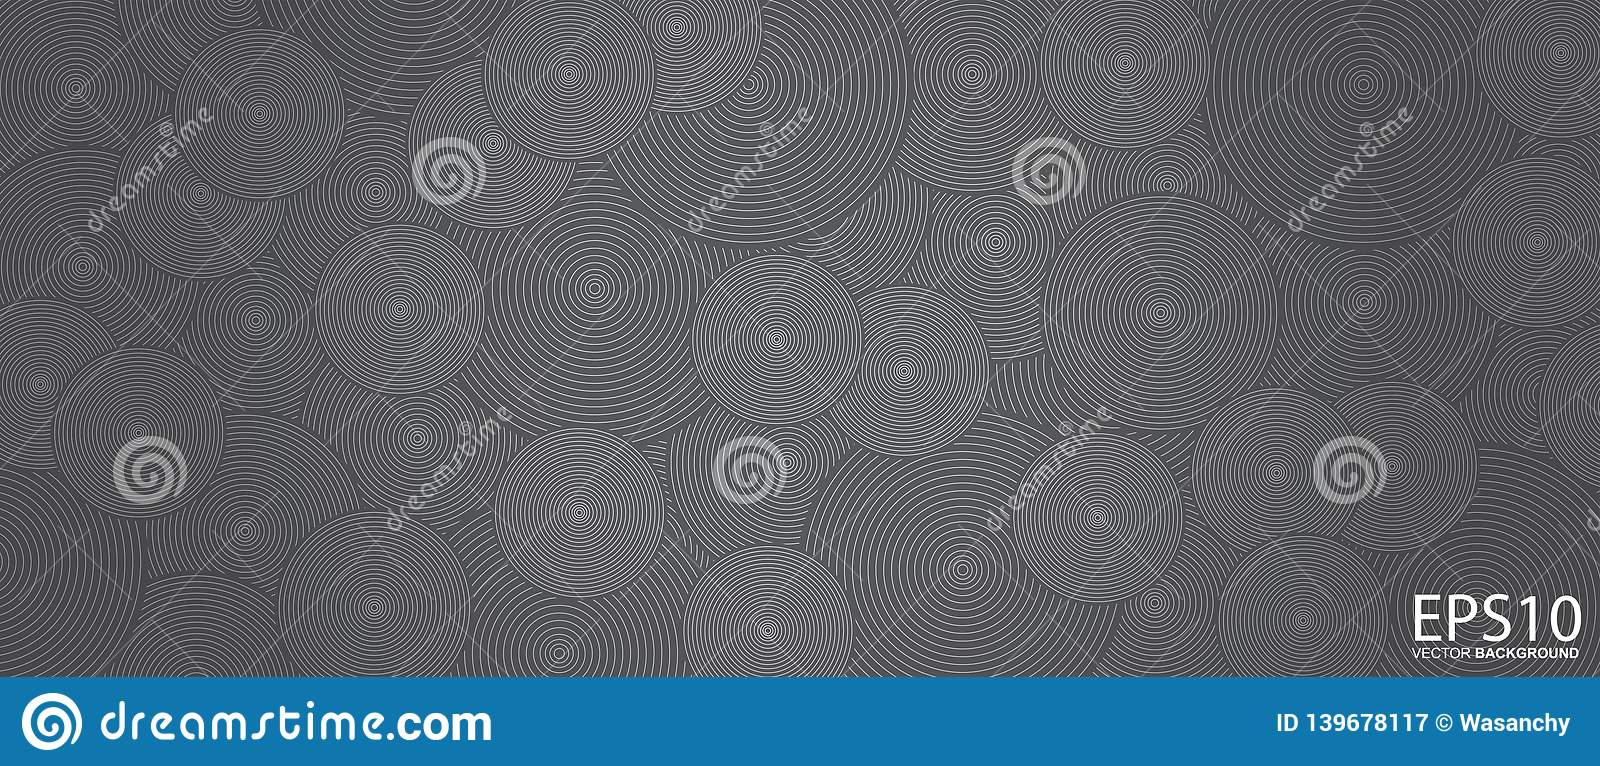 Classic circle line vector pattern background